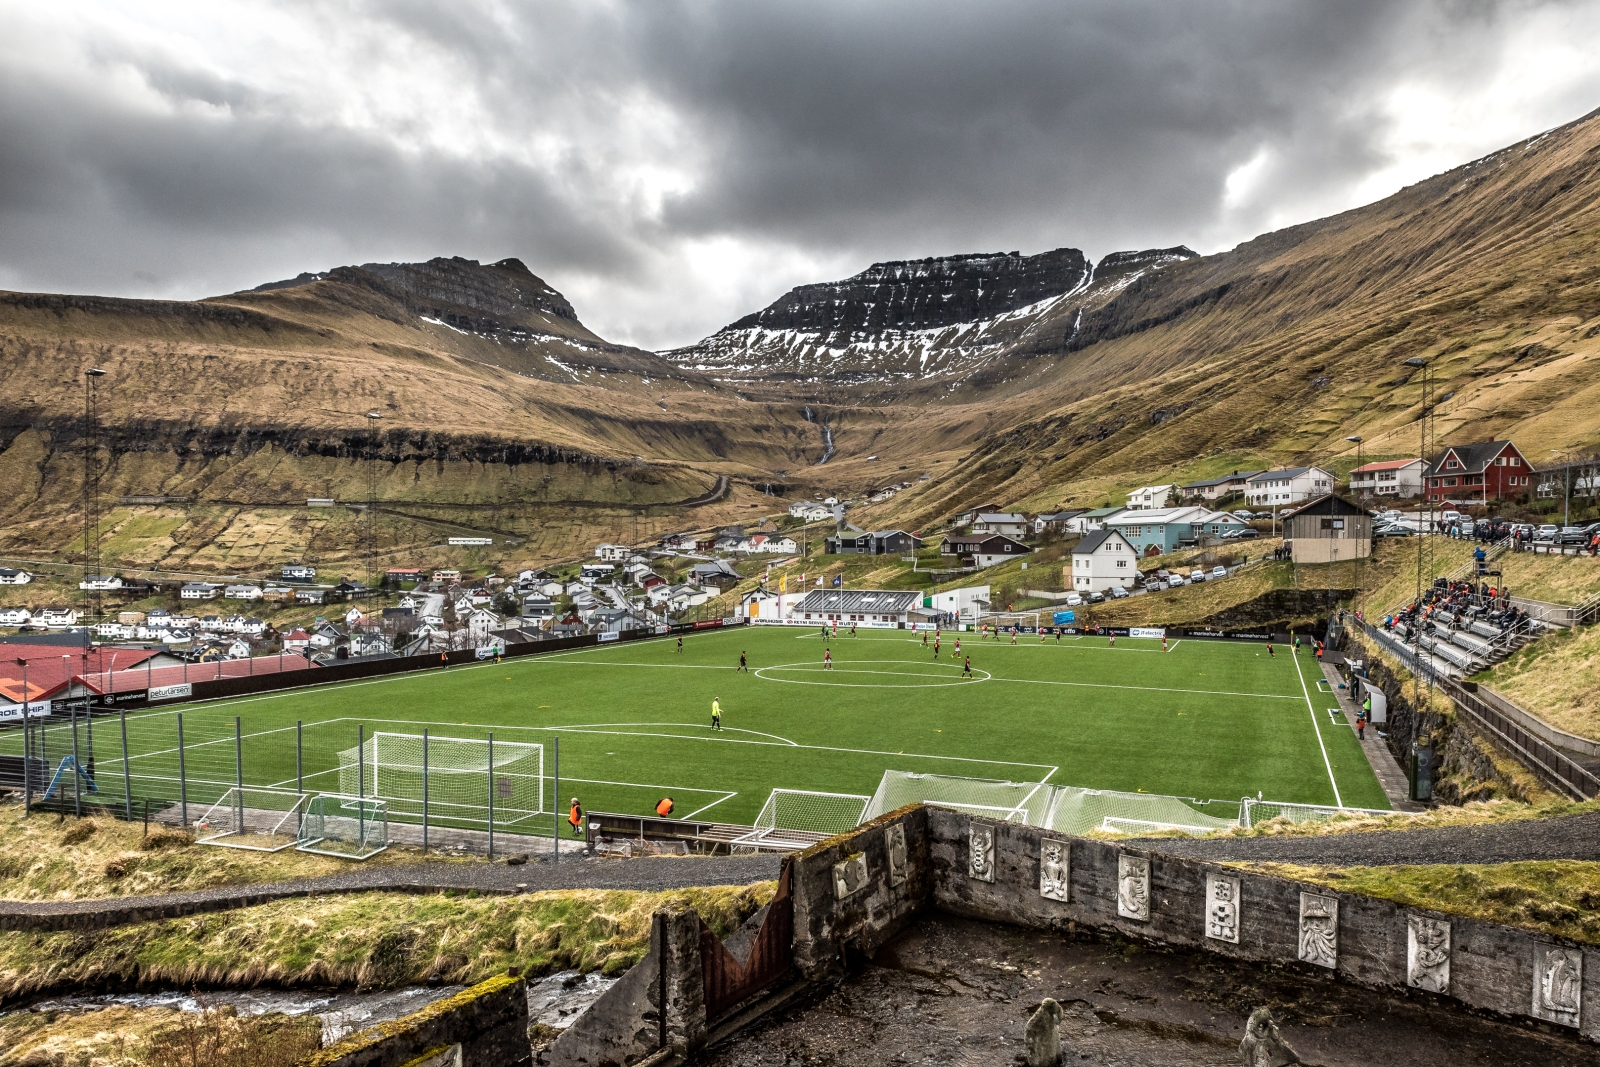 faroe_islands_april_2016_DHK5815.jpg